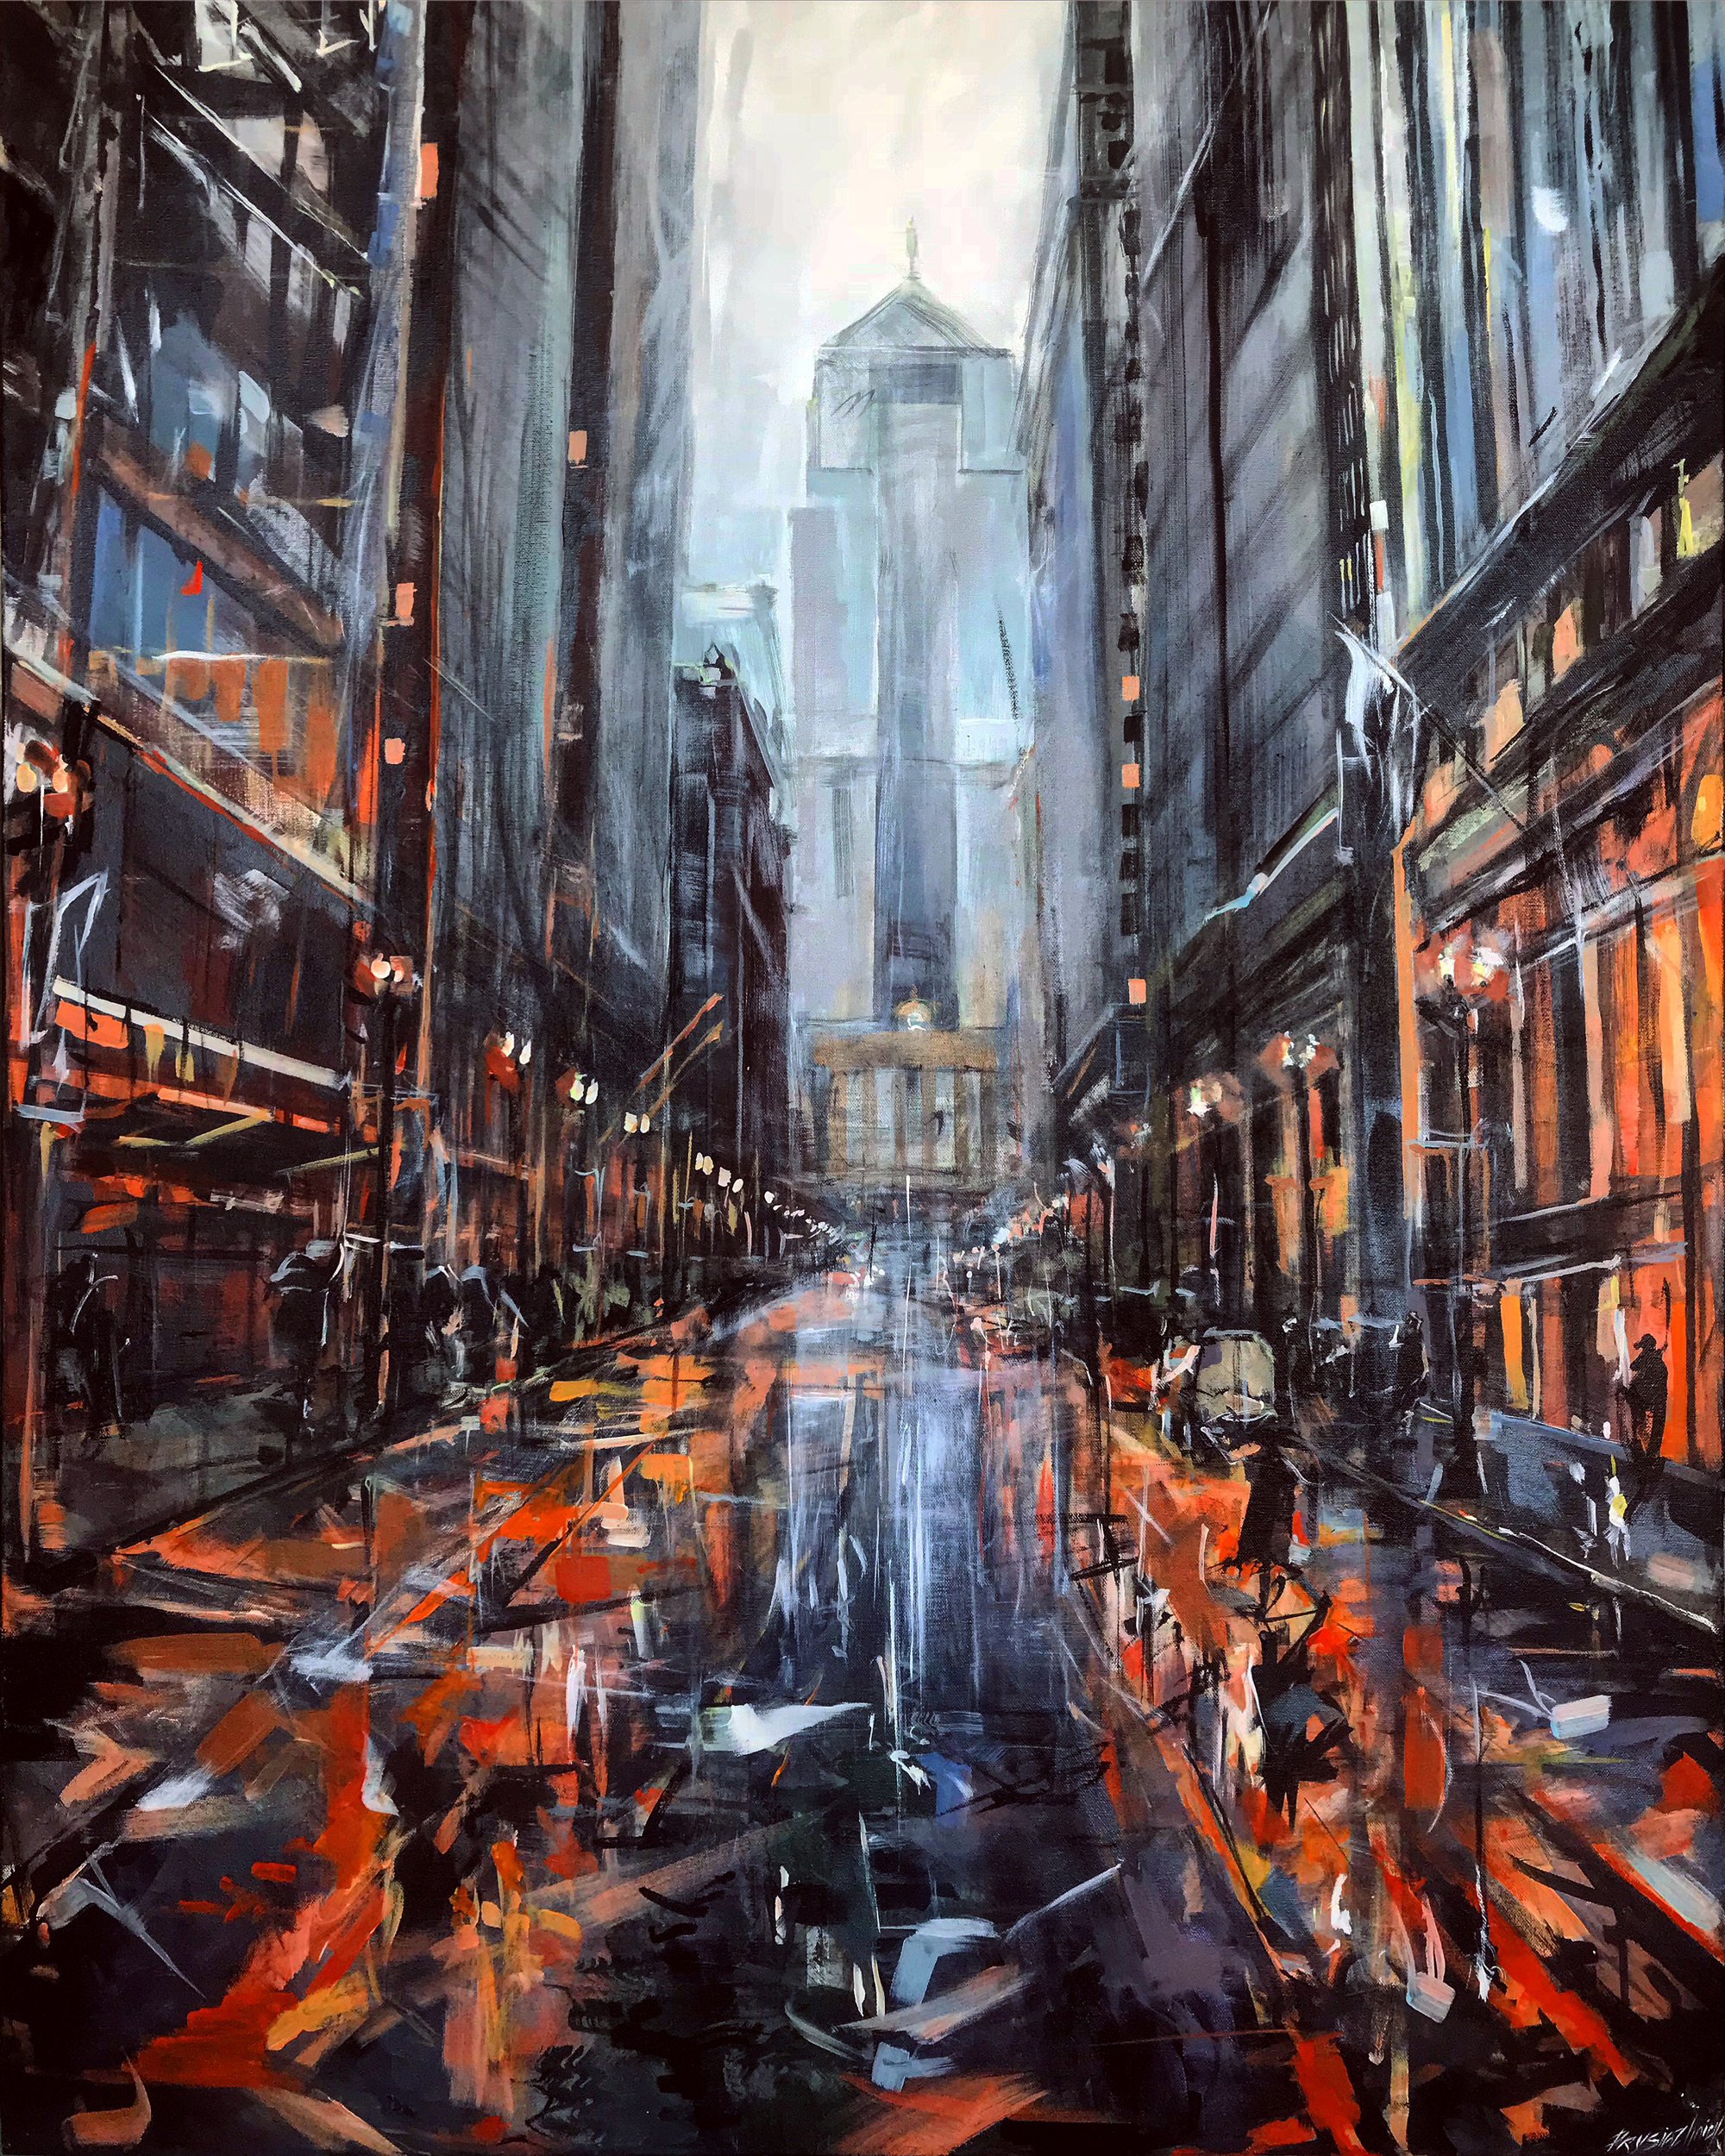 Plein Air Oil Paintings of Chicago Architecture, Parks, and Landmarks by Luna Prysiazhniuk